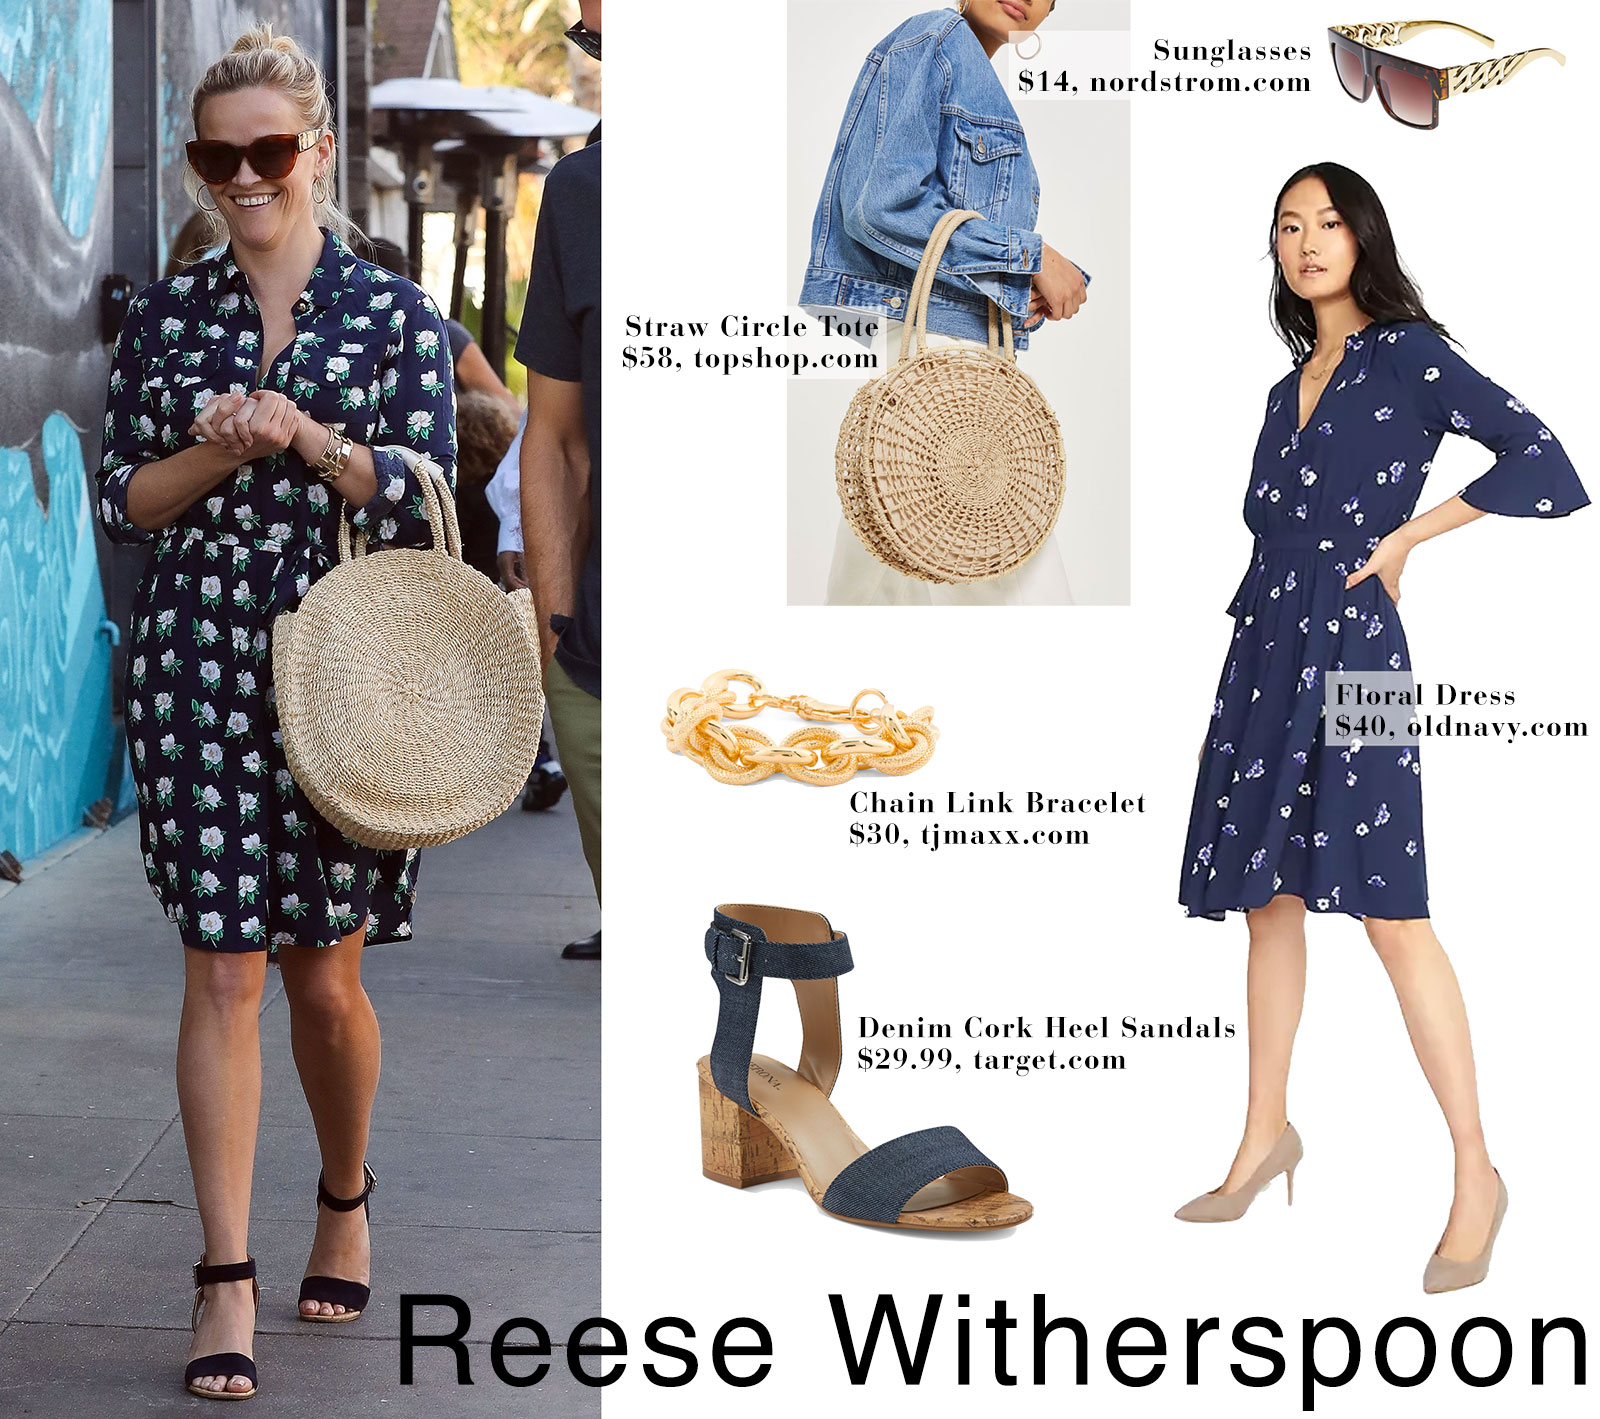 Reese Witherspoon's floral shirtdress and straw circle tote bag look for less